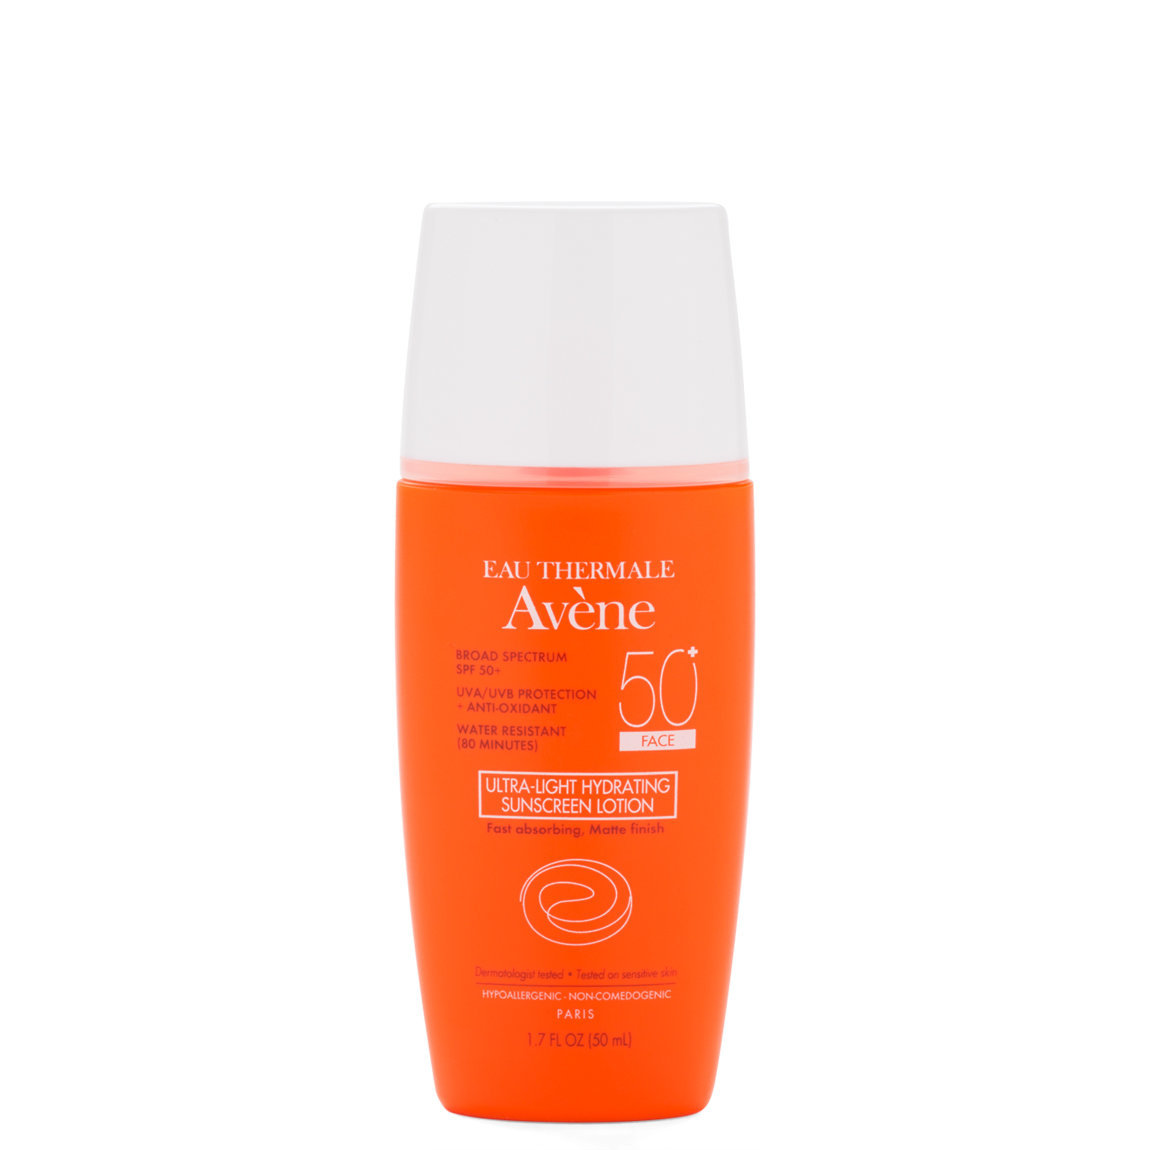 Eau Thermale Avène Ultra-Light Hydrating Sunscreen Face Lotion SPF 50+ product smear.